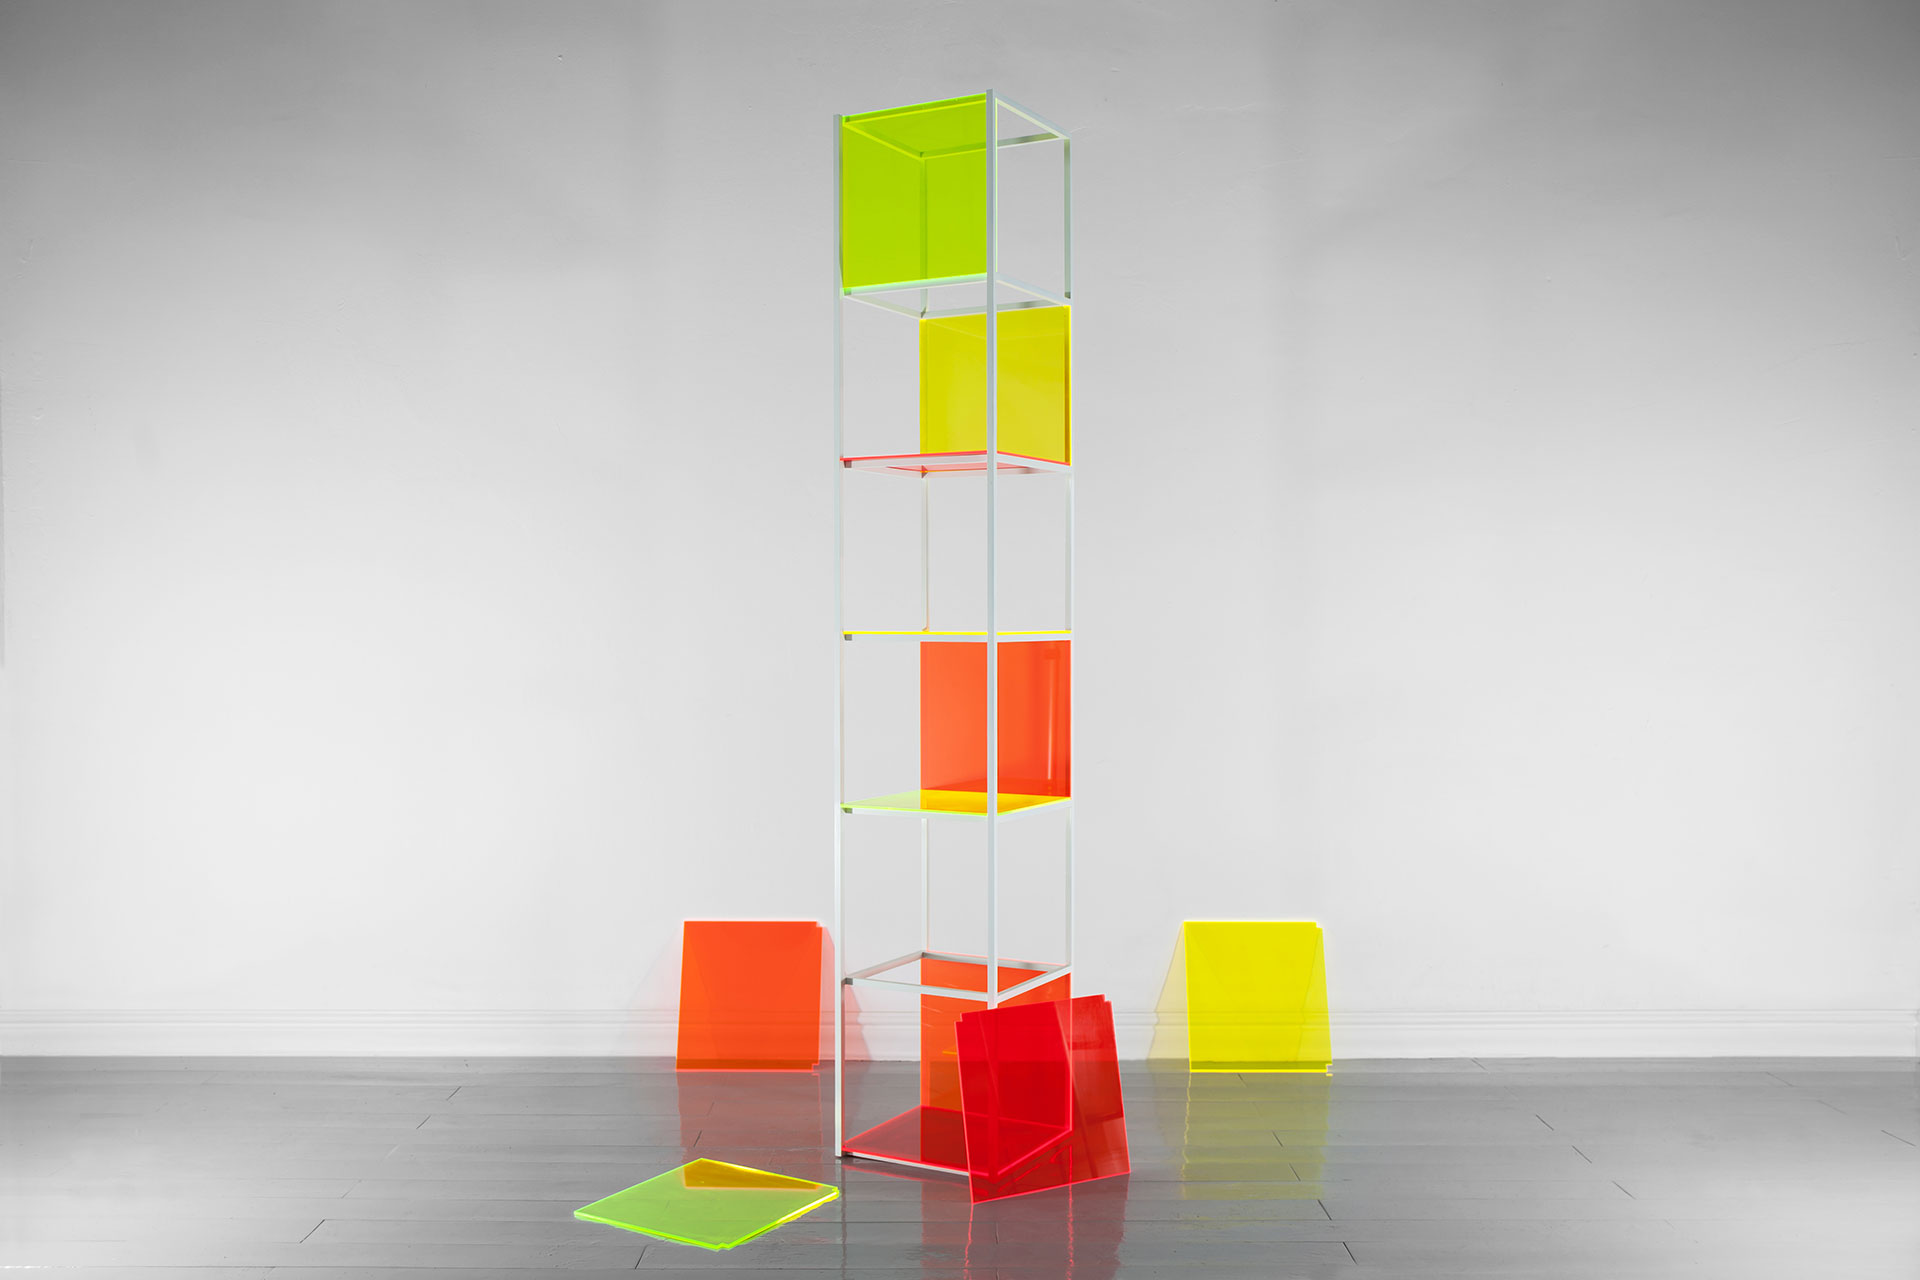 Conceptual shelving made of colorful plexi